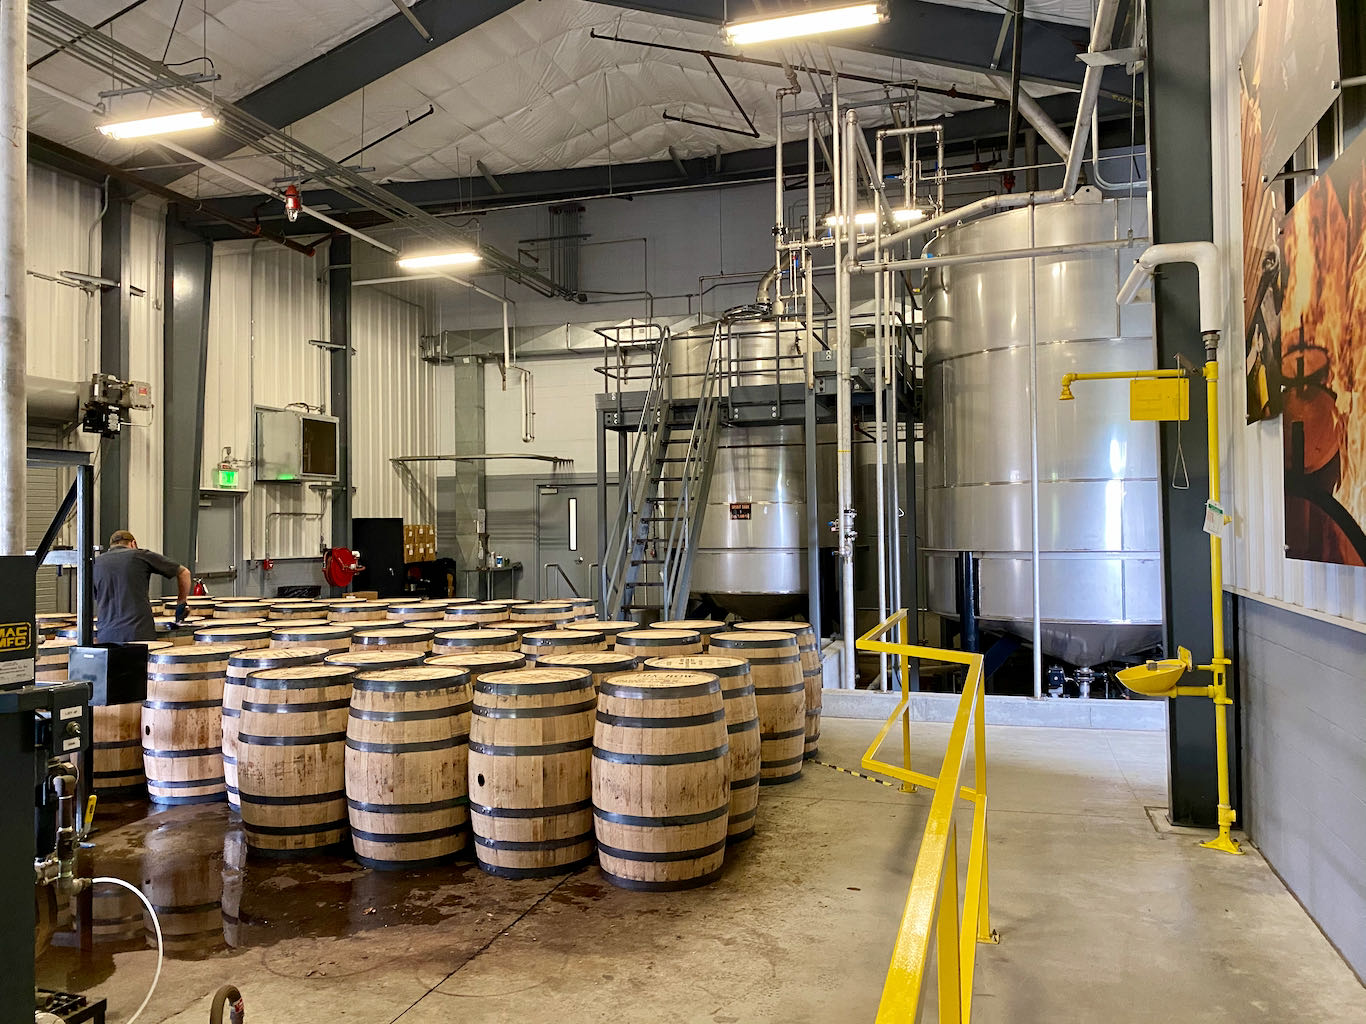 Barreling and Spirit Tanks  - Lux Row Distillers